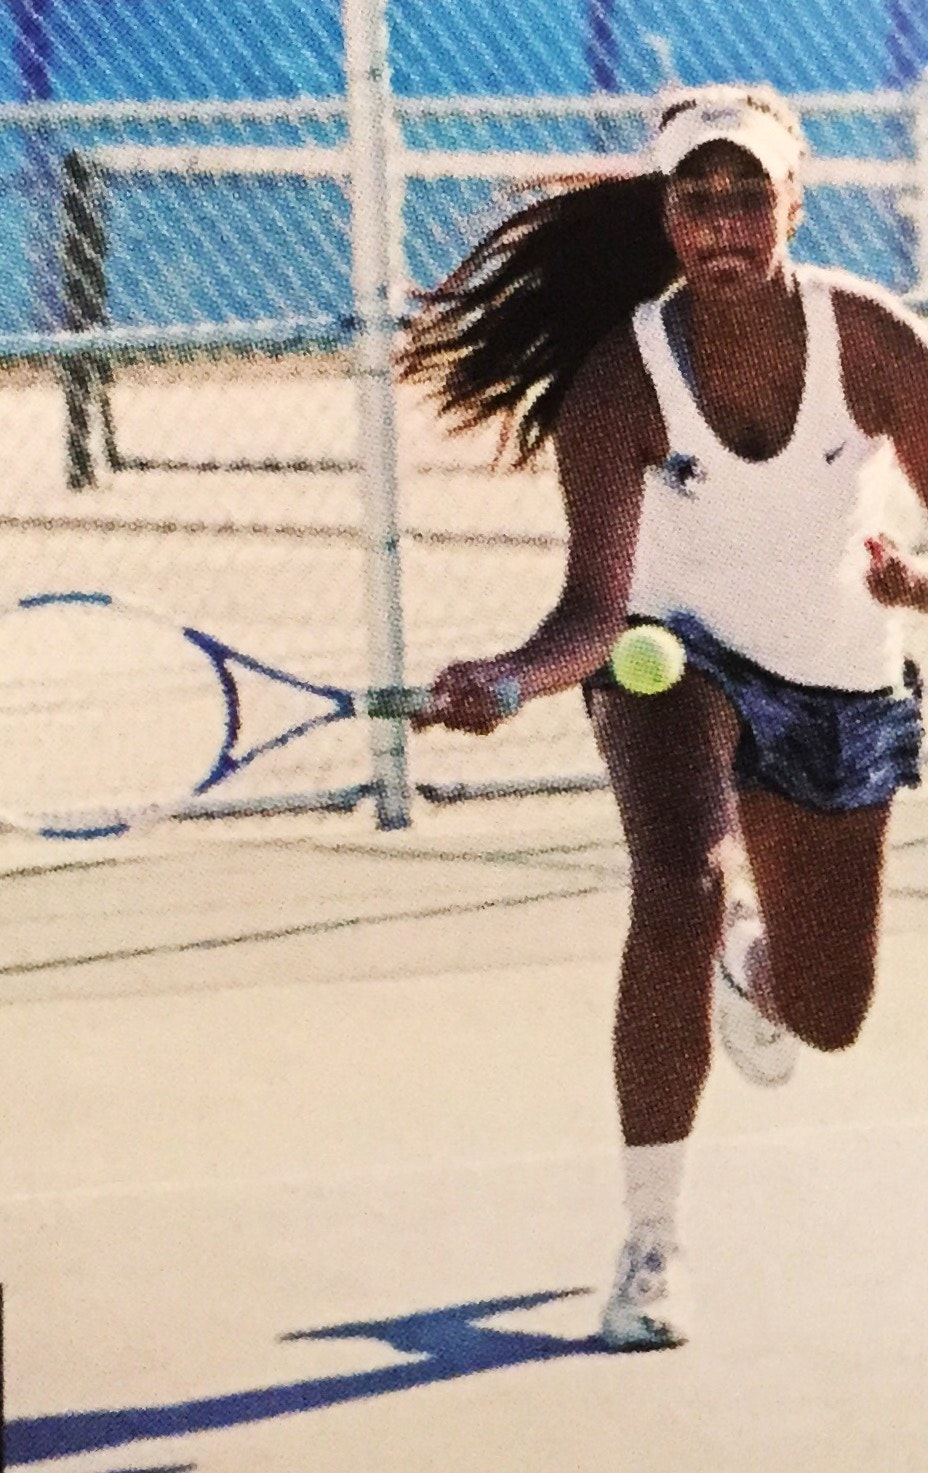 Lilian R. teaches tennis lessons in Fresno, CA